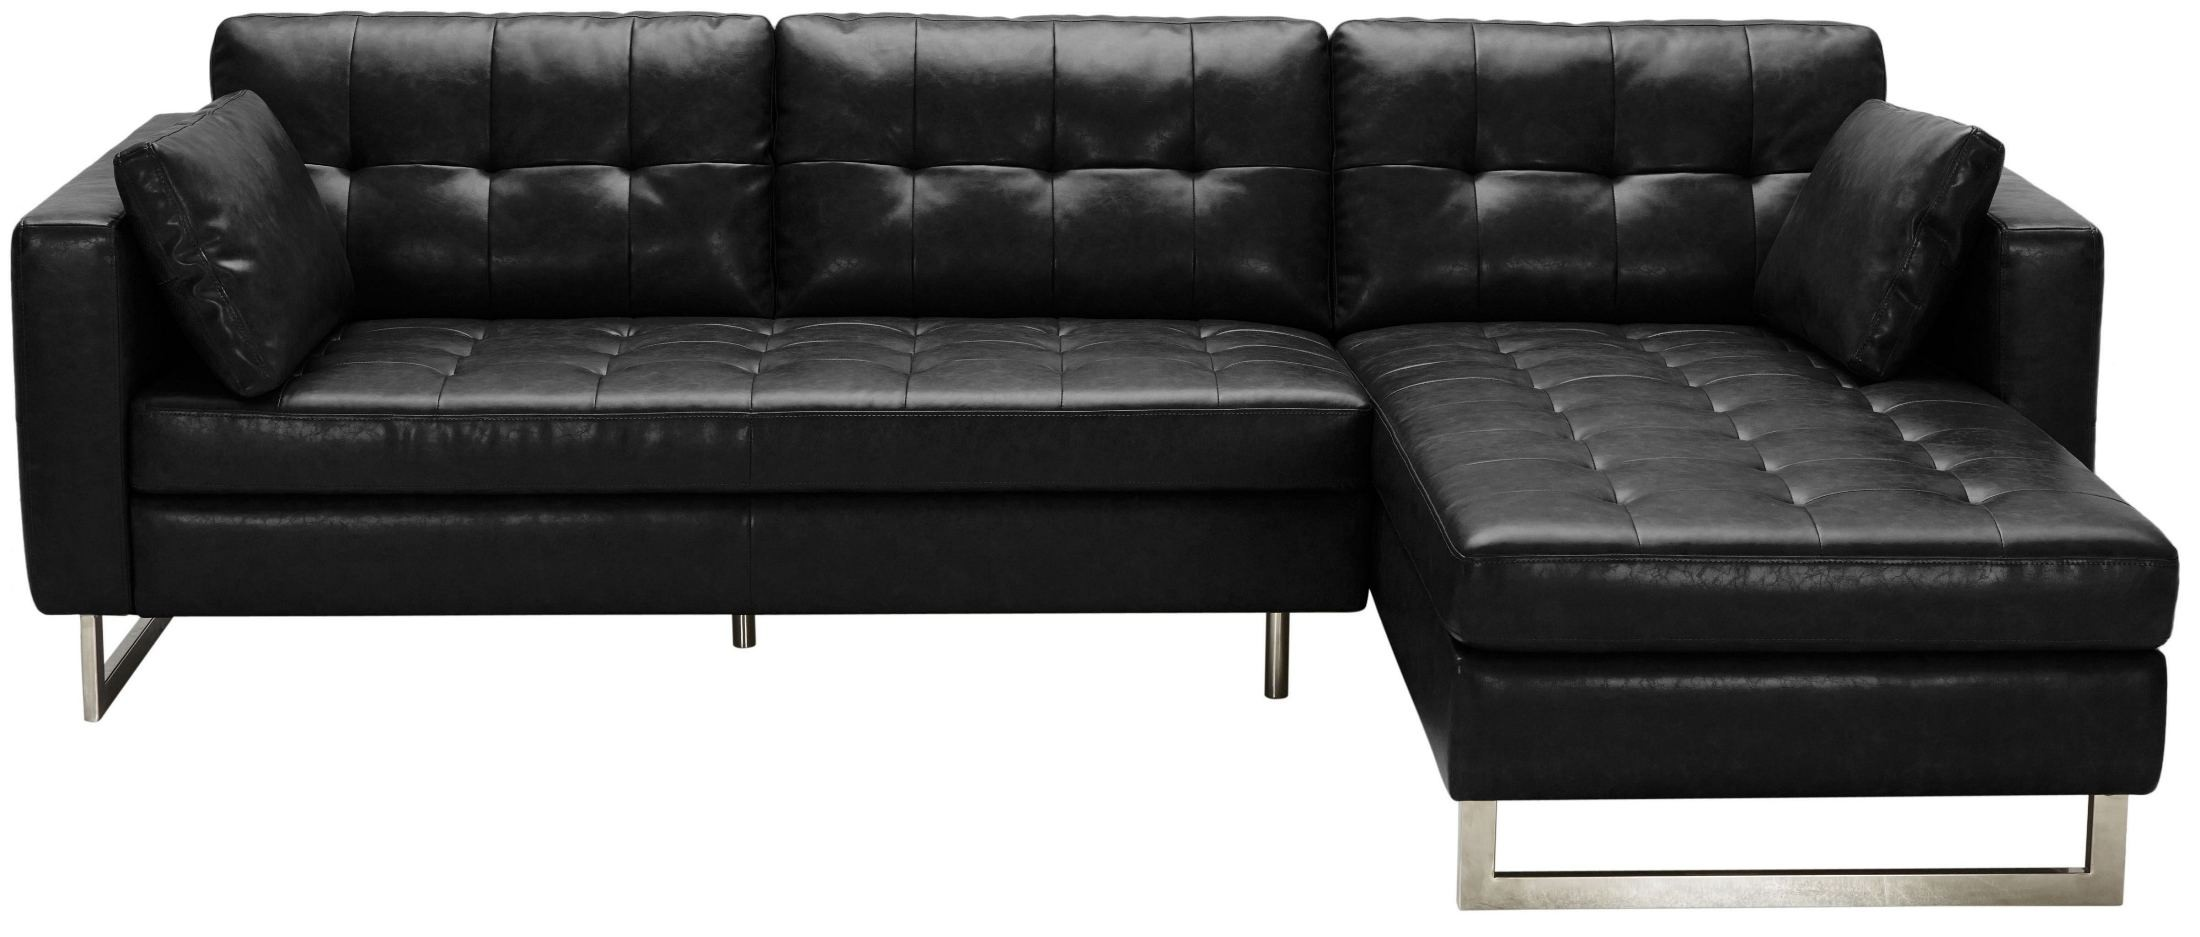 Wilson black fog leather sofa chaise 100833 sunpan for Black sectional with chaise